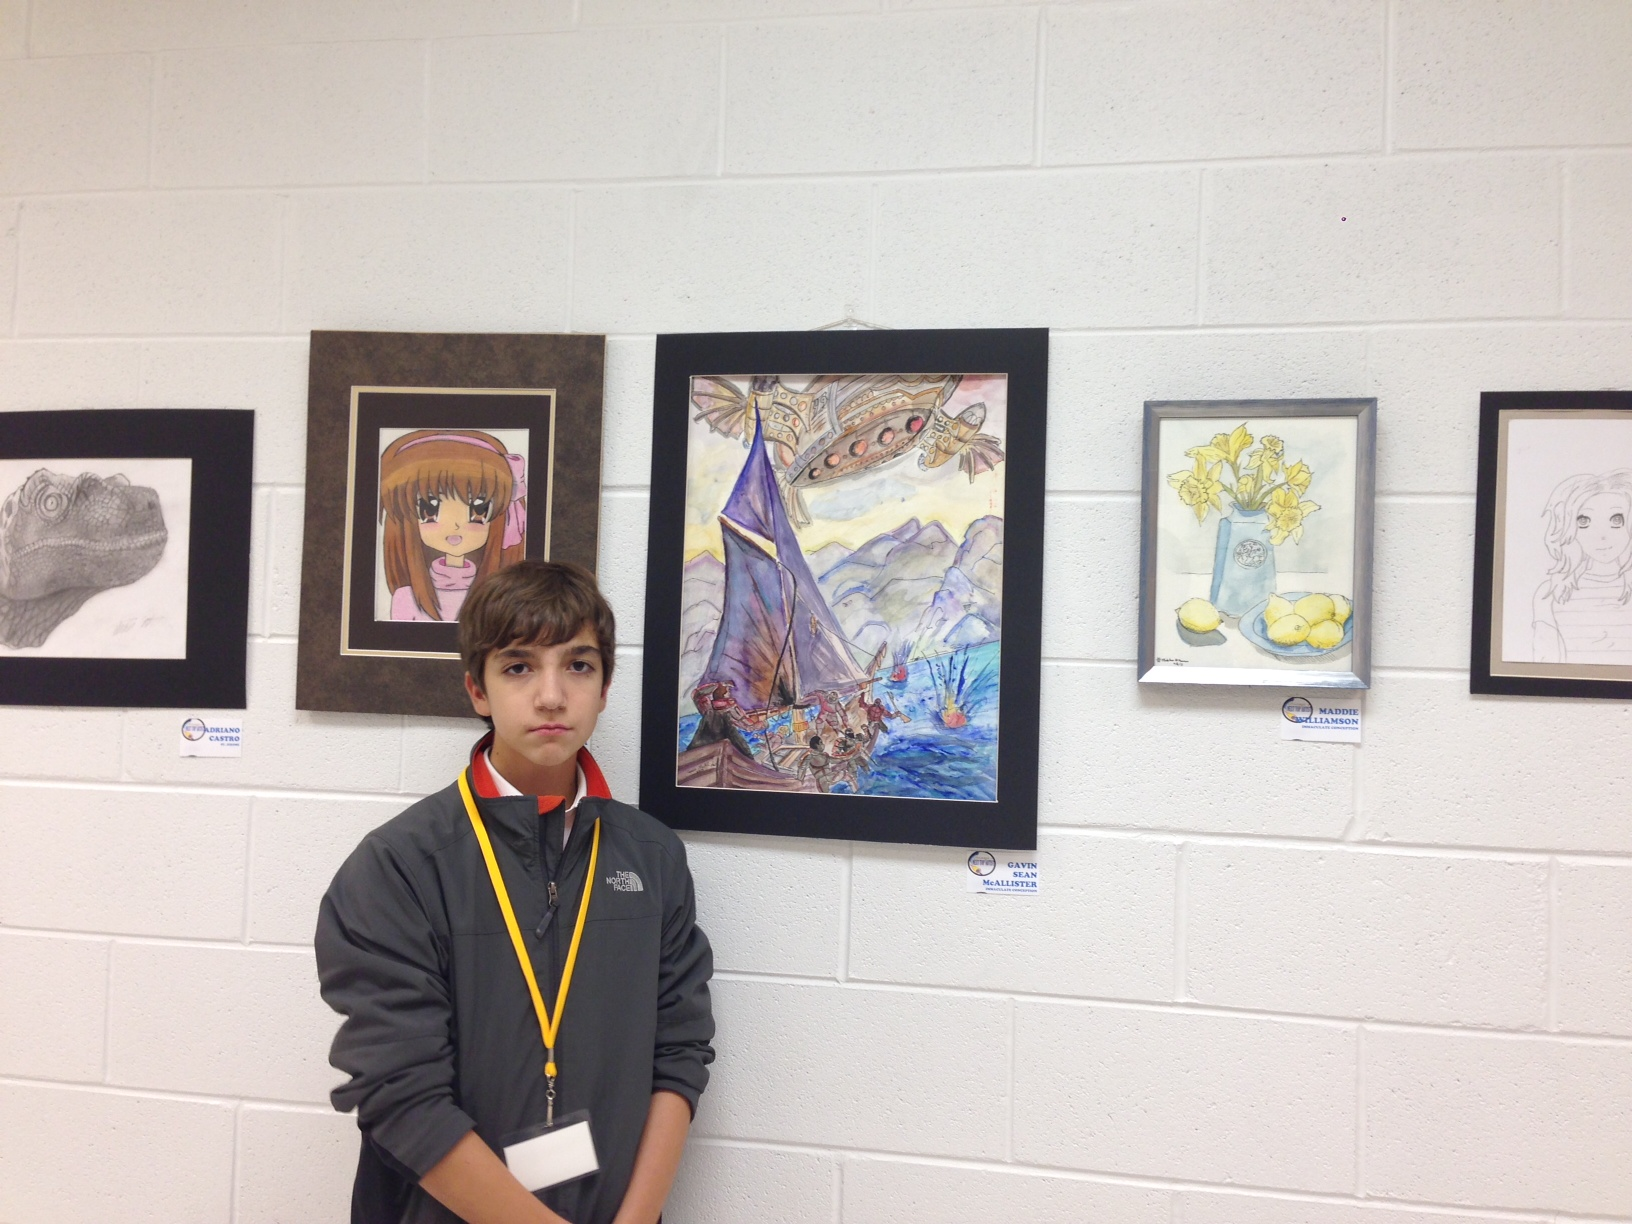 Chicago Top Artist - 1st Place, Gavin Mcallister